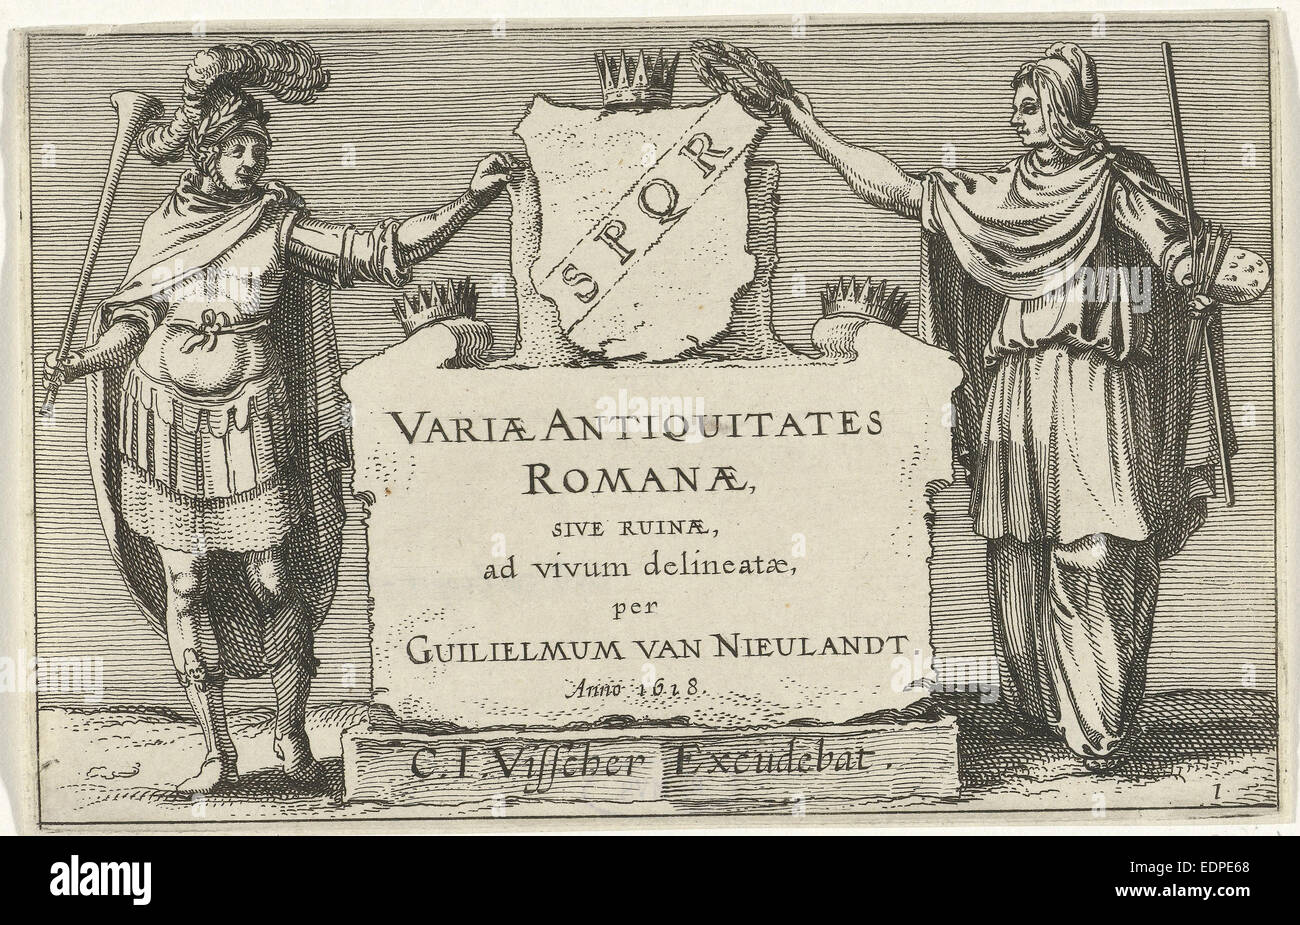 Fame and Arts besides a monumental stone, Anonymous, Claes Jansz. Visscher (II), 1618 - Stock Image